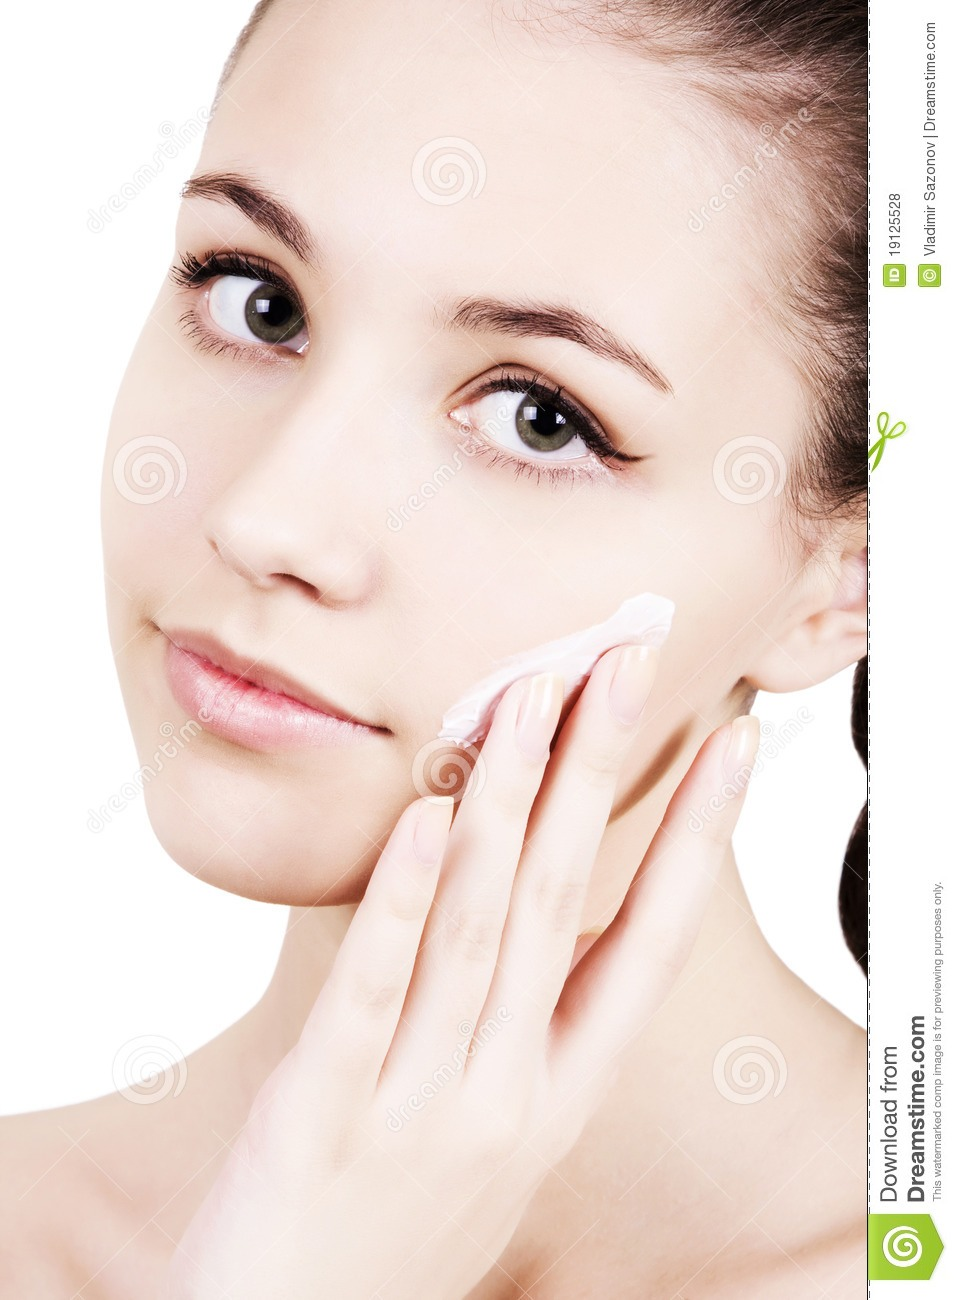 Never rub moisturizer on your face, pat it. Rubbing it actually takes it off your skin and disperses it in different places. Patting it helps the skin soak it up.